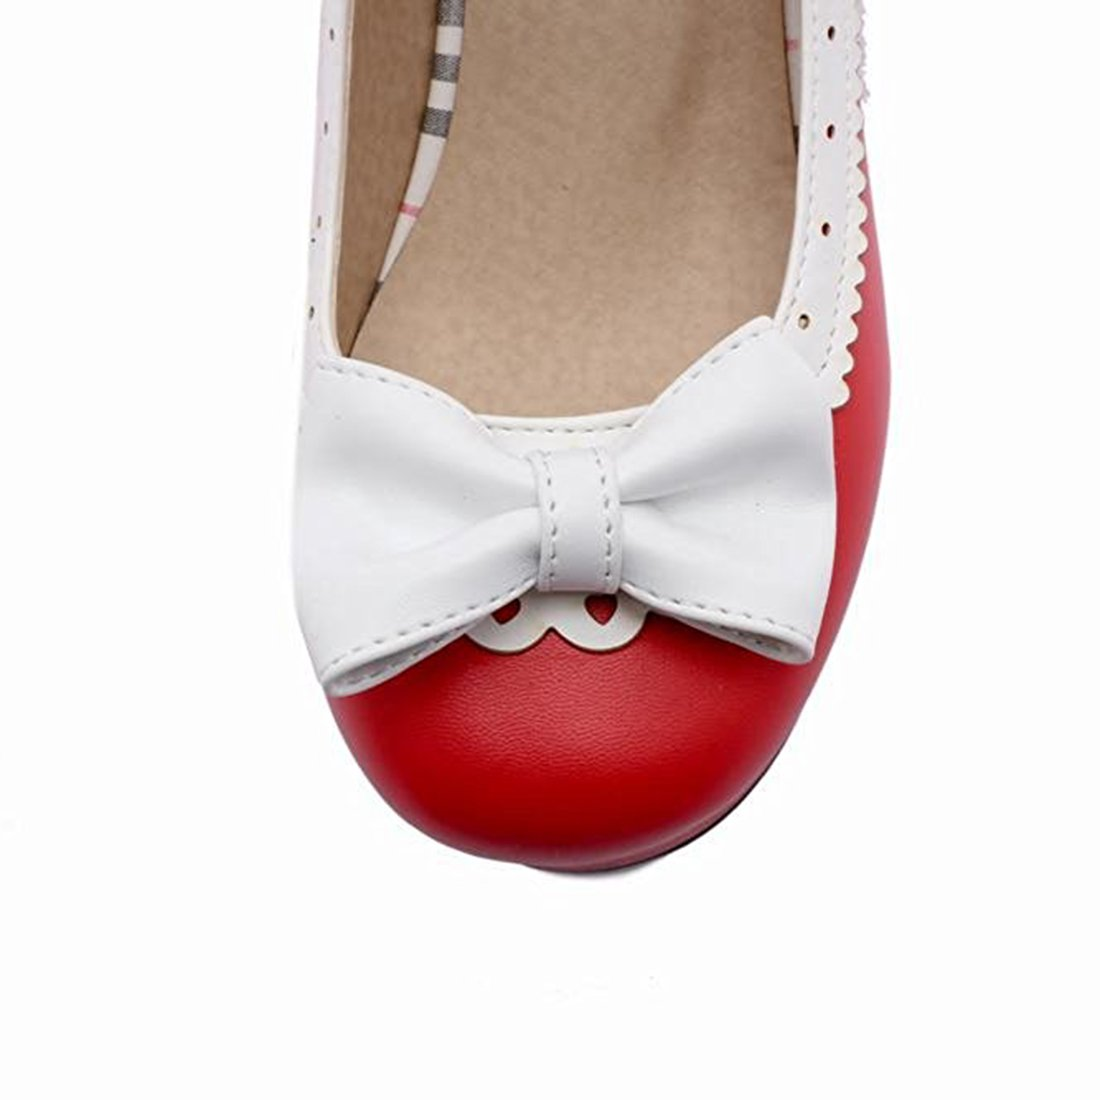 Agodor Womens Platform Mid Heel Mary Janes Ankle Strap Court Shoes With Bowtie Retro Closed Toe Cute Pumps